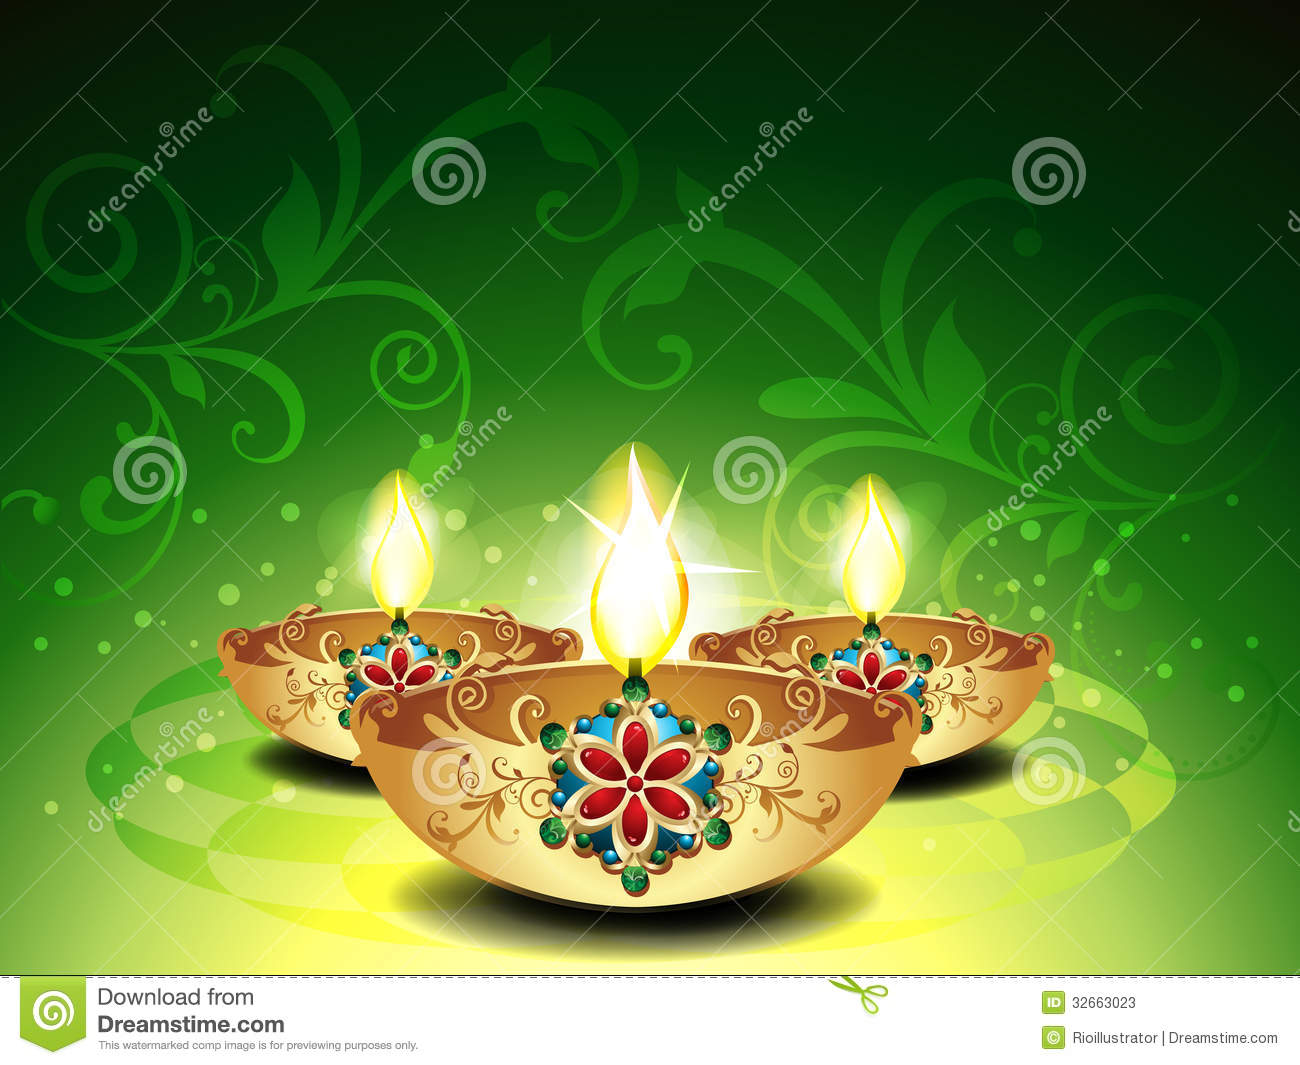 abstract-deepawali-background-vector-illustration-32663023